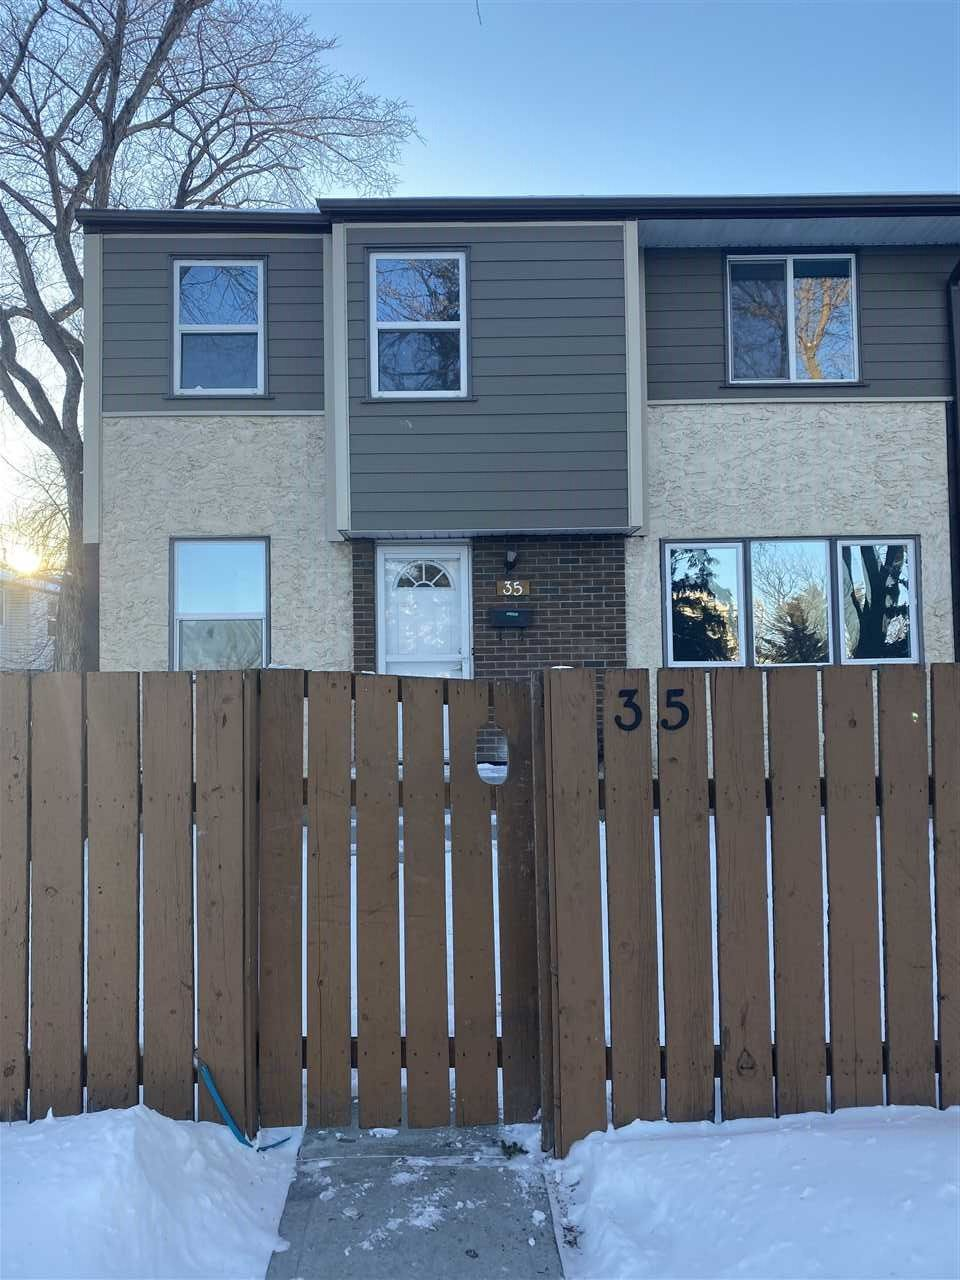 Main Photo: 35 WILLOWDALE Place in Edmonton: Zone 20 Townhouse for sale : MLS®# E4229271